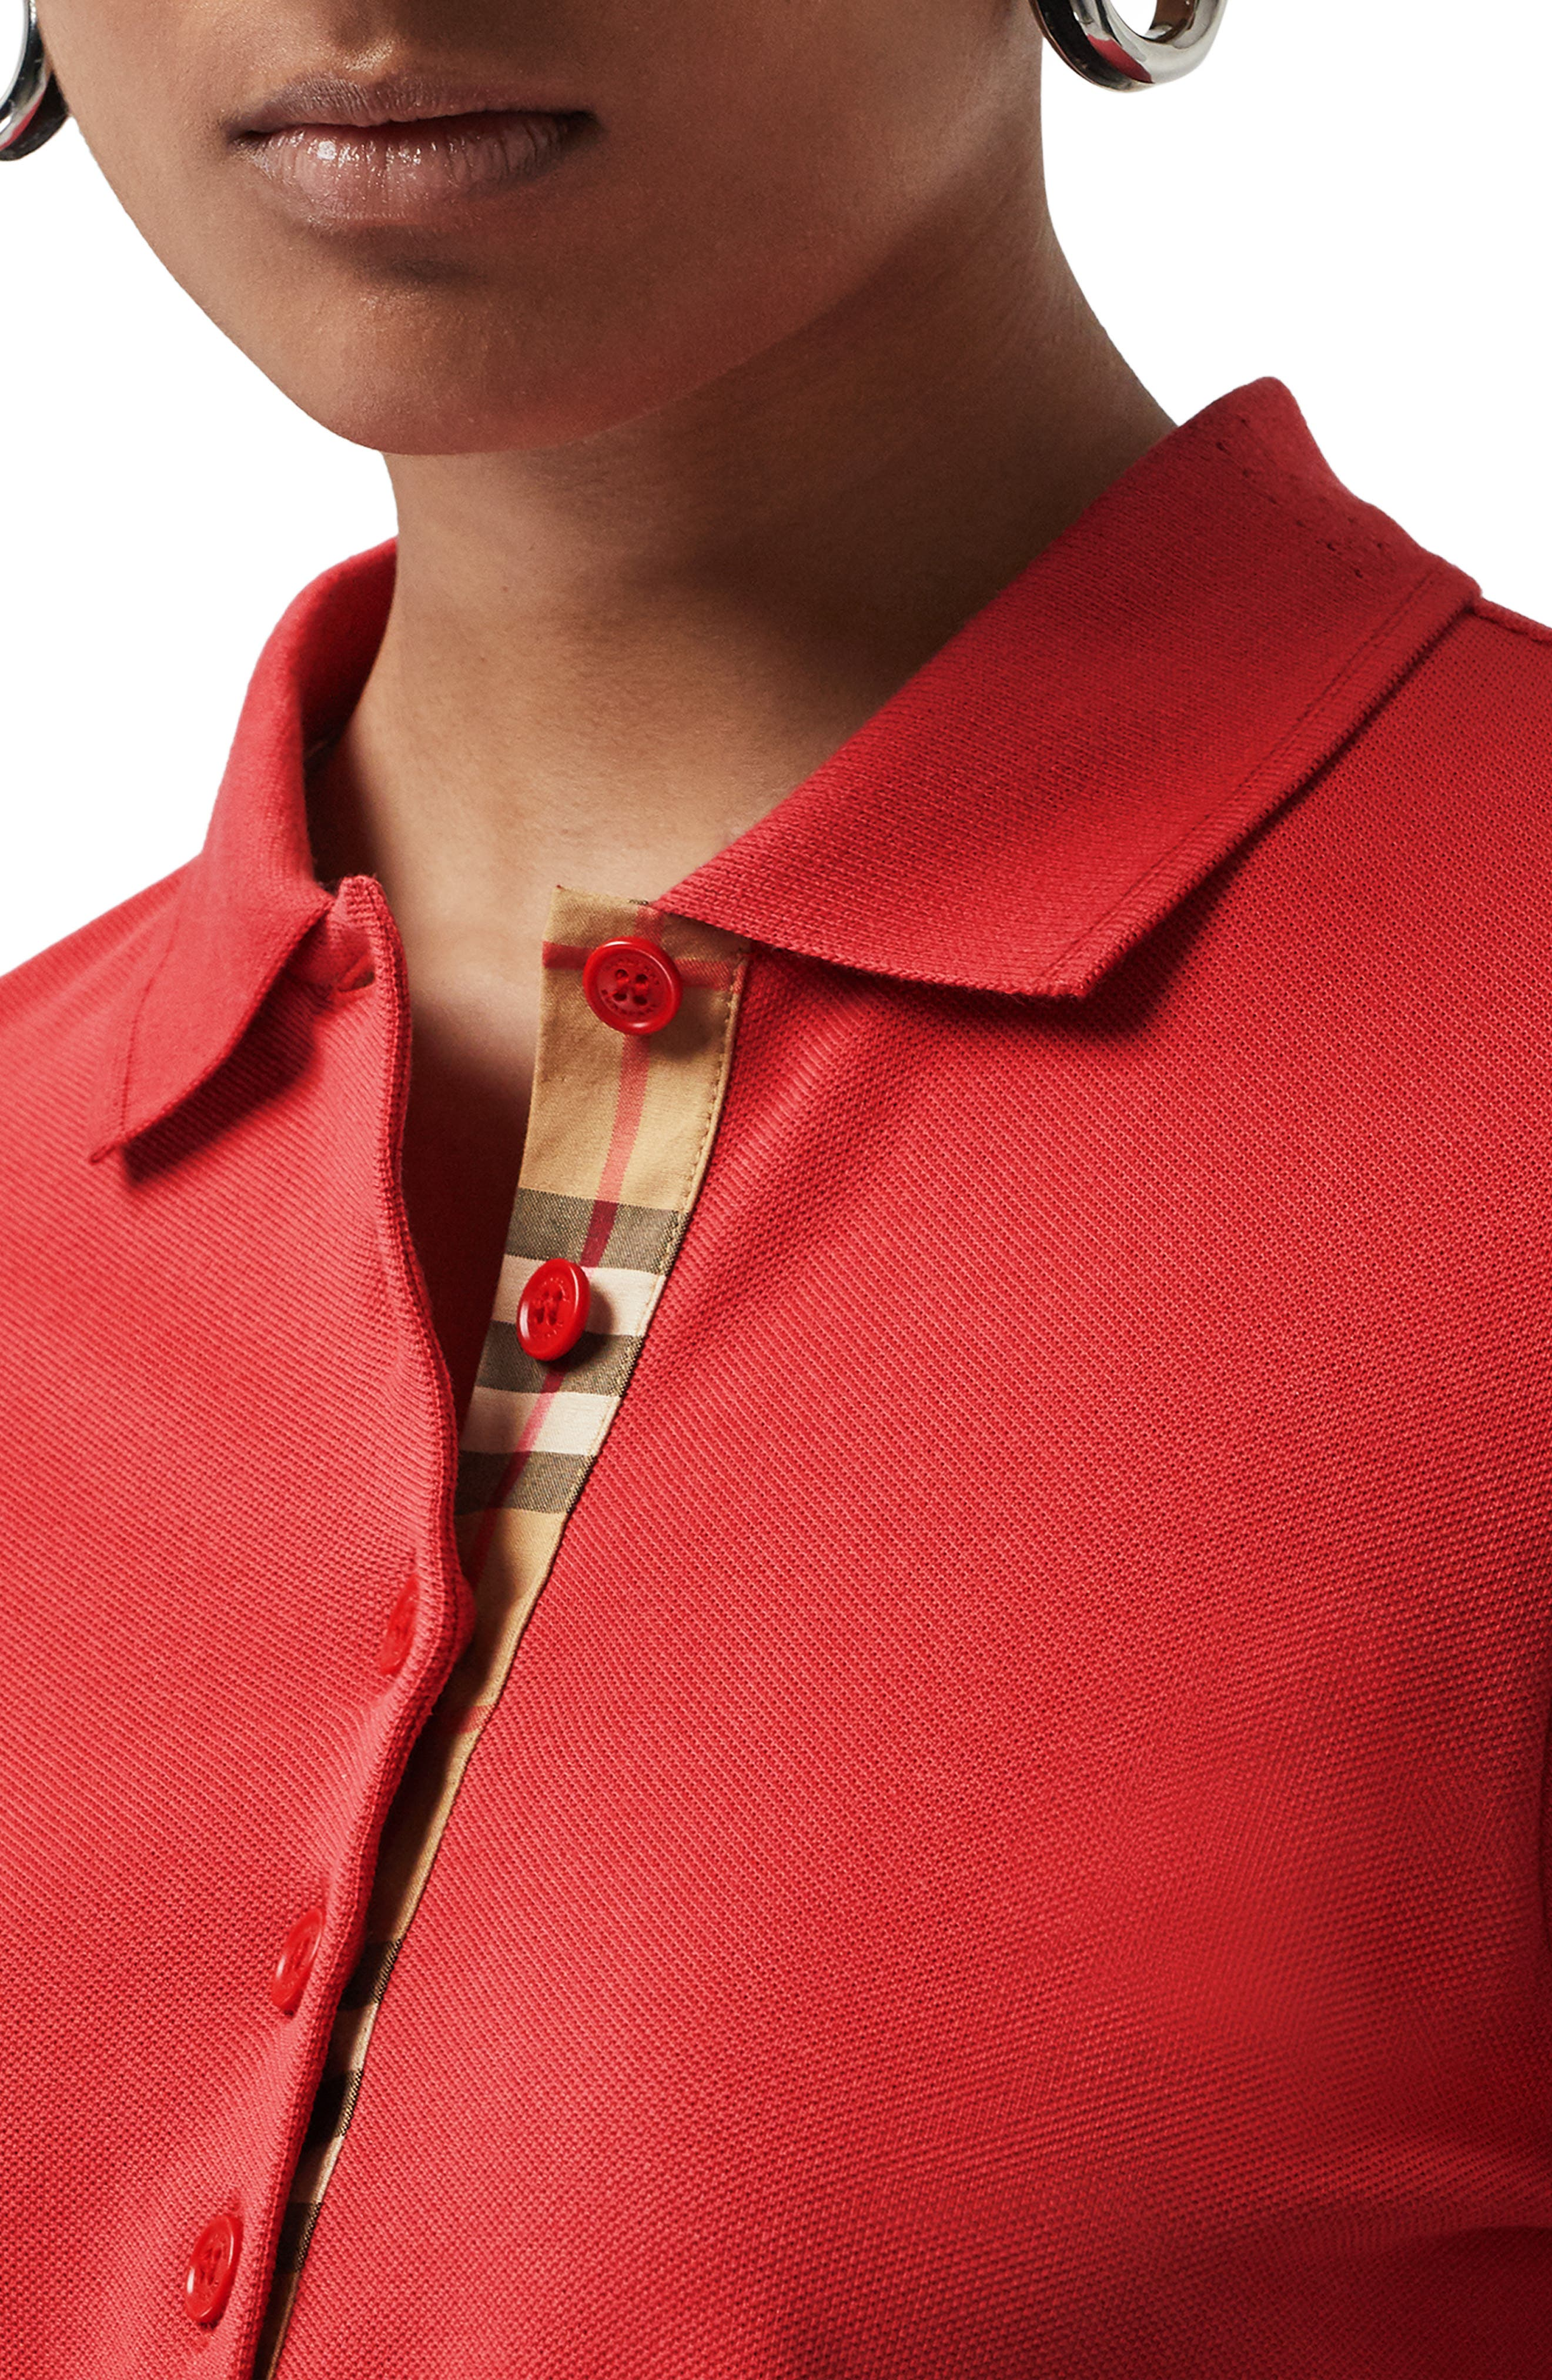 BURBERRY, Zulia Polo Shirt, Alternate thumbnail 3, color, BRIGHT RED